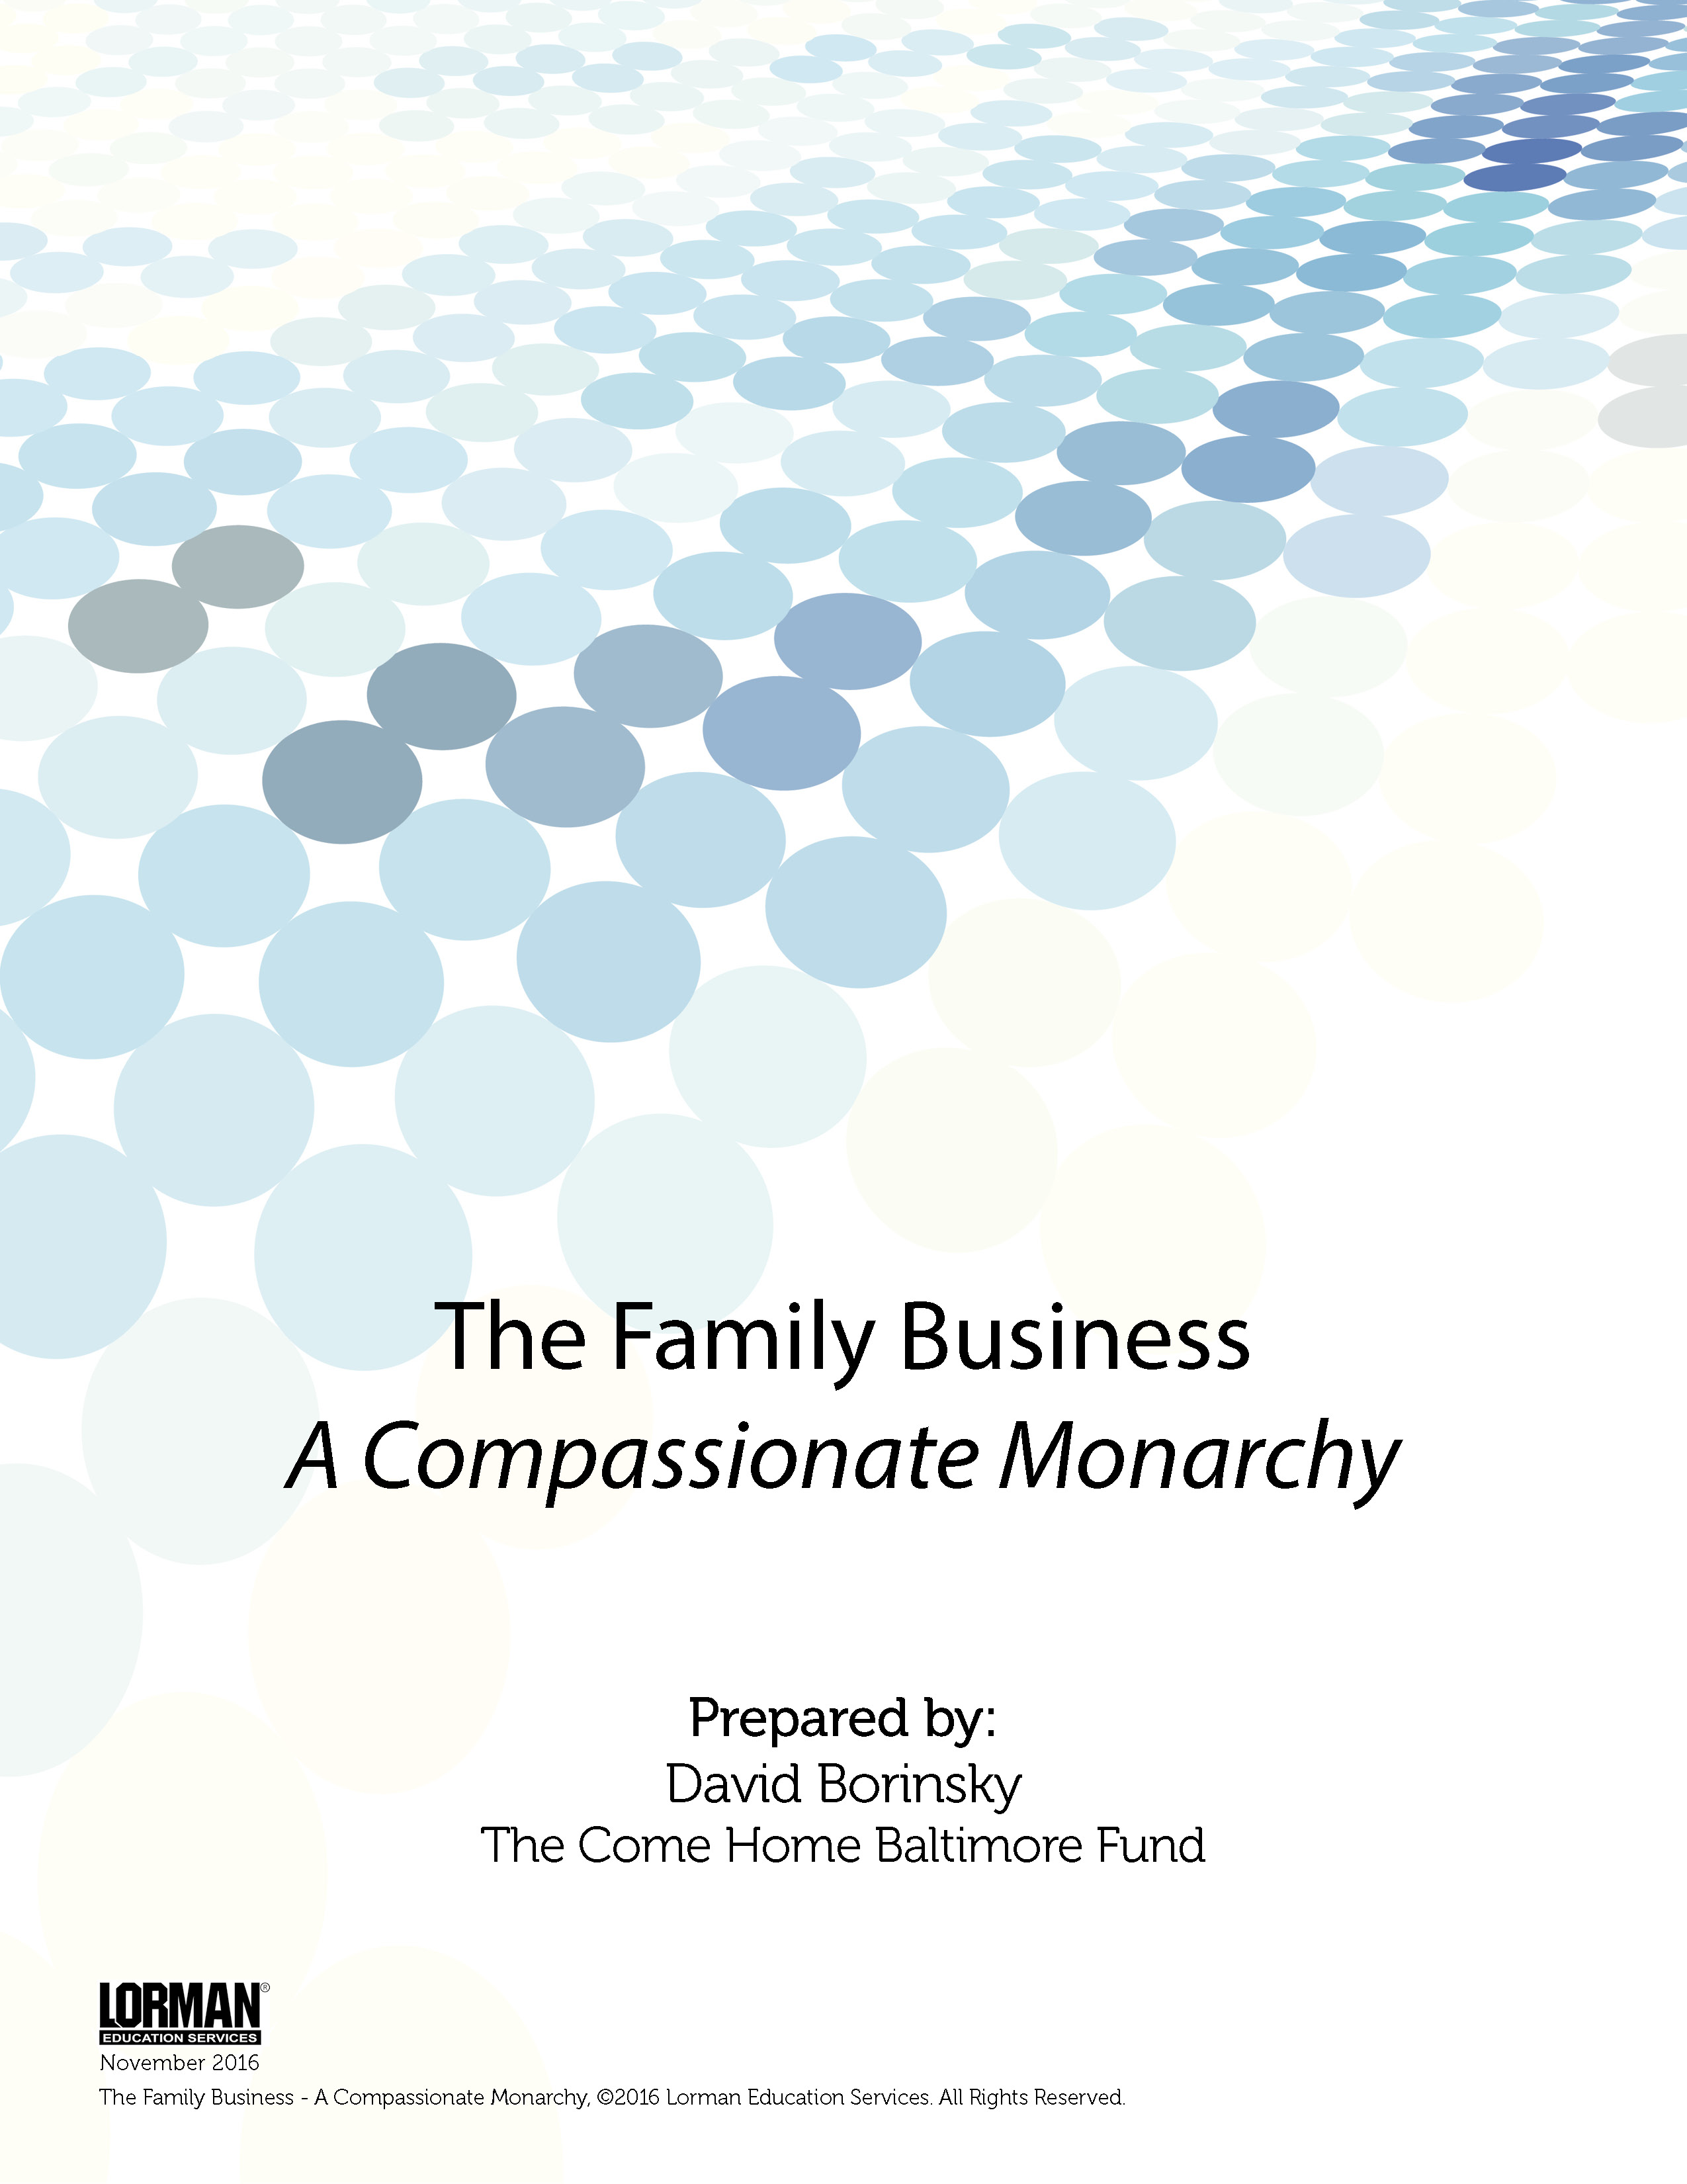 The Family Business - A Compassionate Monarchy